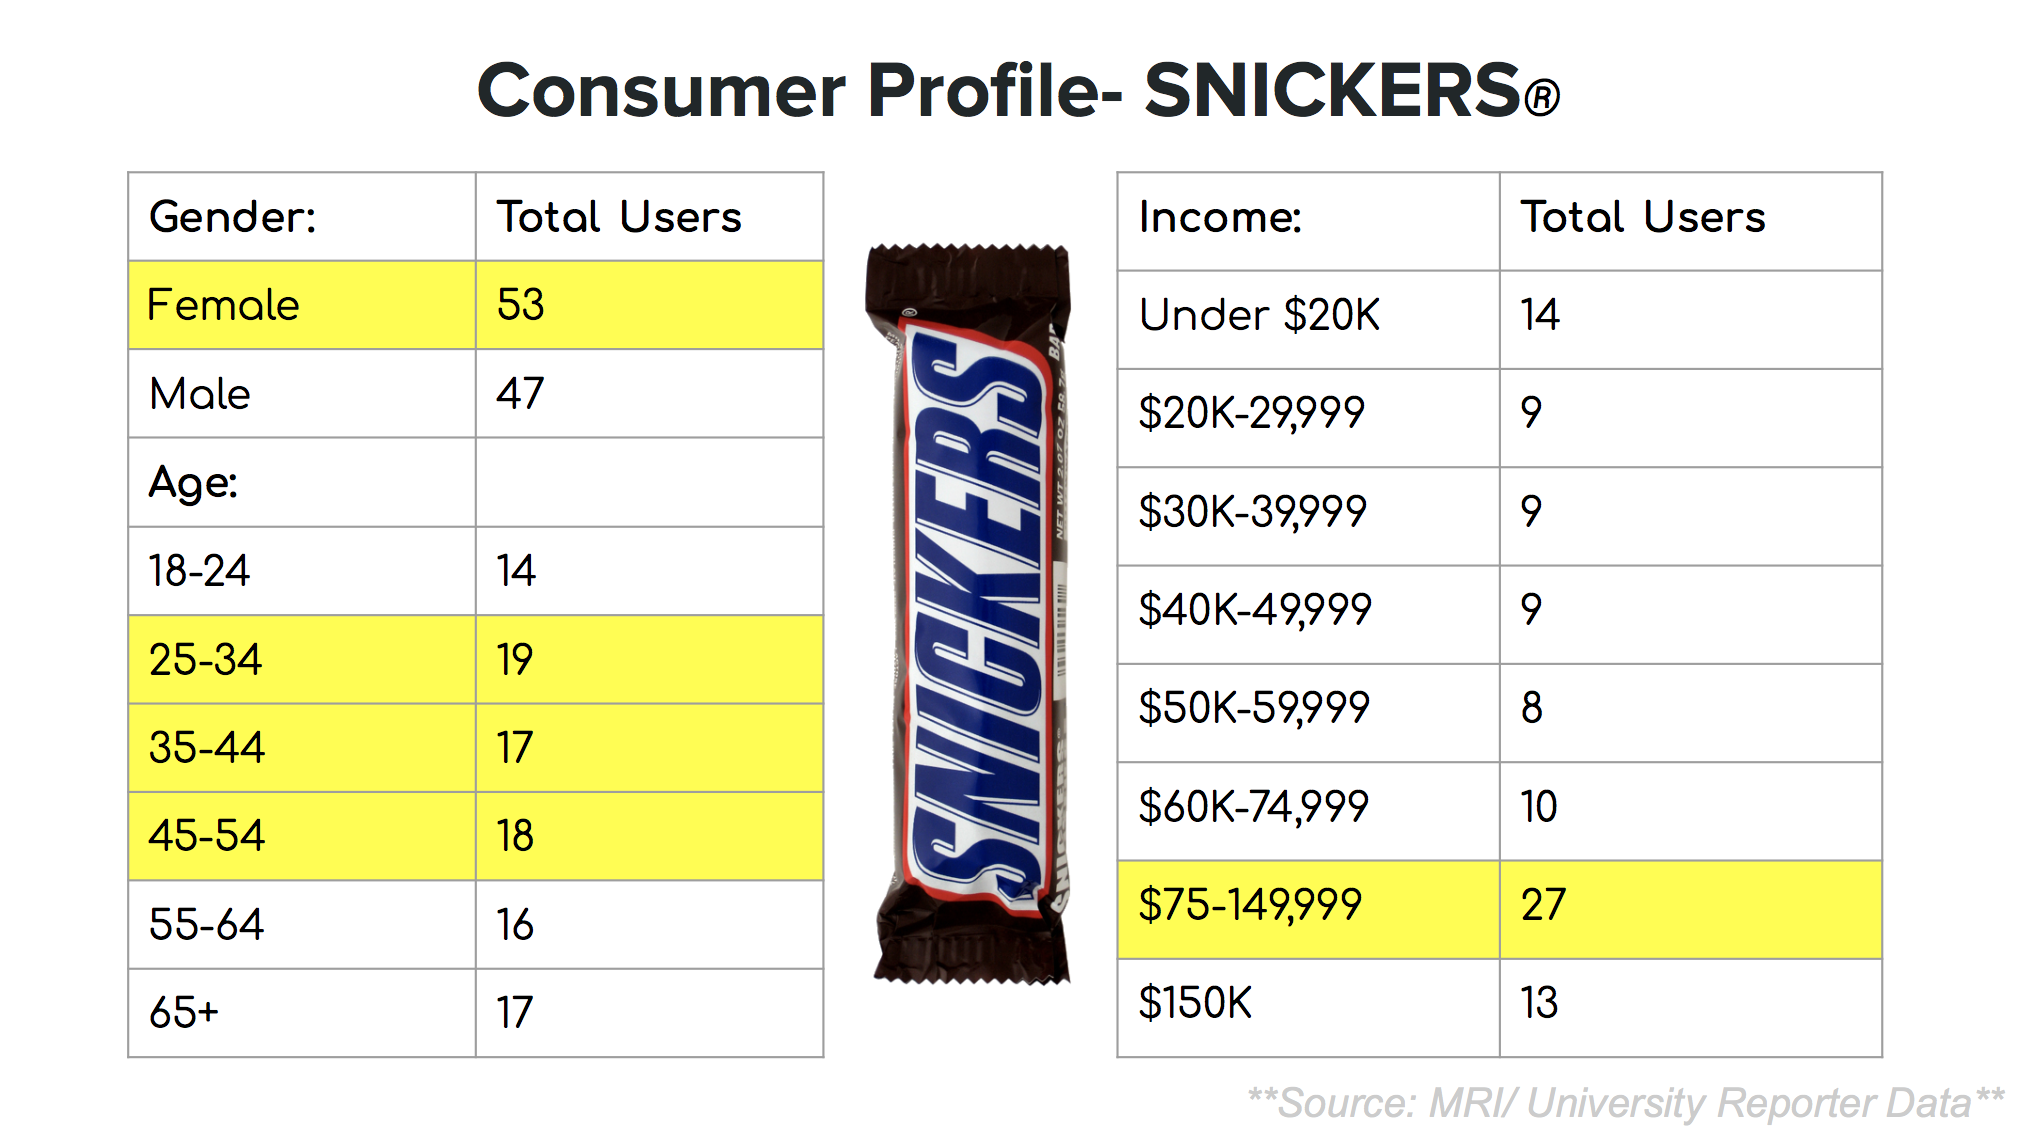 Snickers- Analysis of Consumer Demographics, Insights, and Strategic Recommendations    Course: Consumer Insight